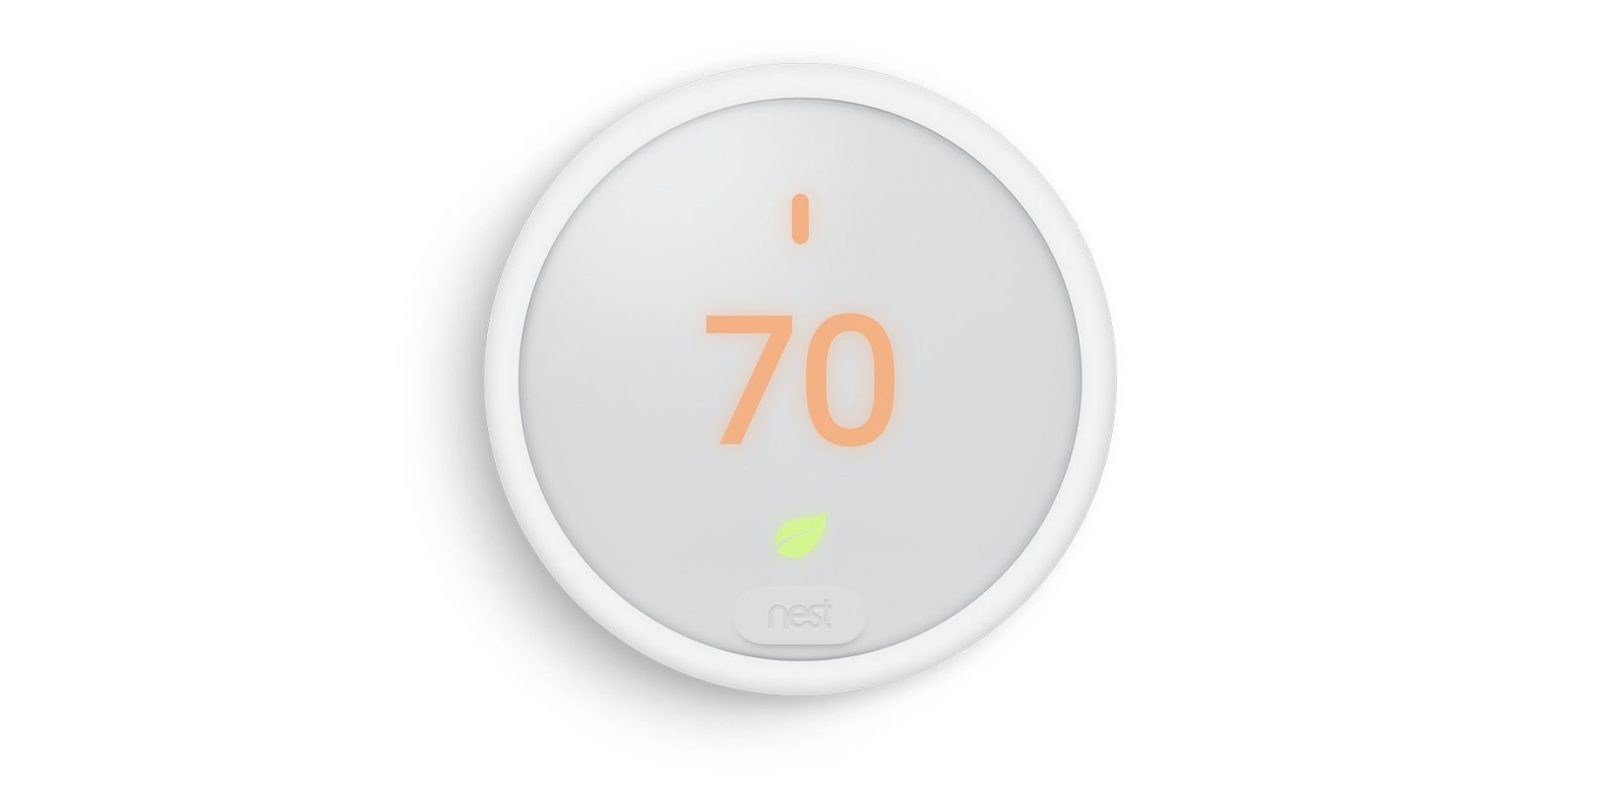 Add Nest Thermostat E to your home for $136 (Reg. $169), more in today's Green Deals